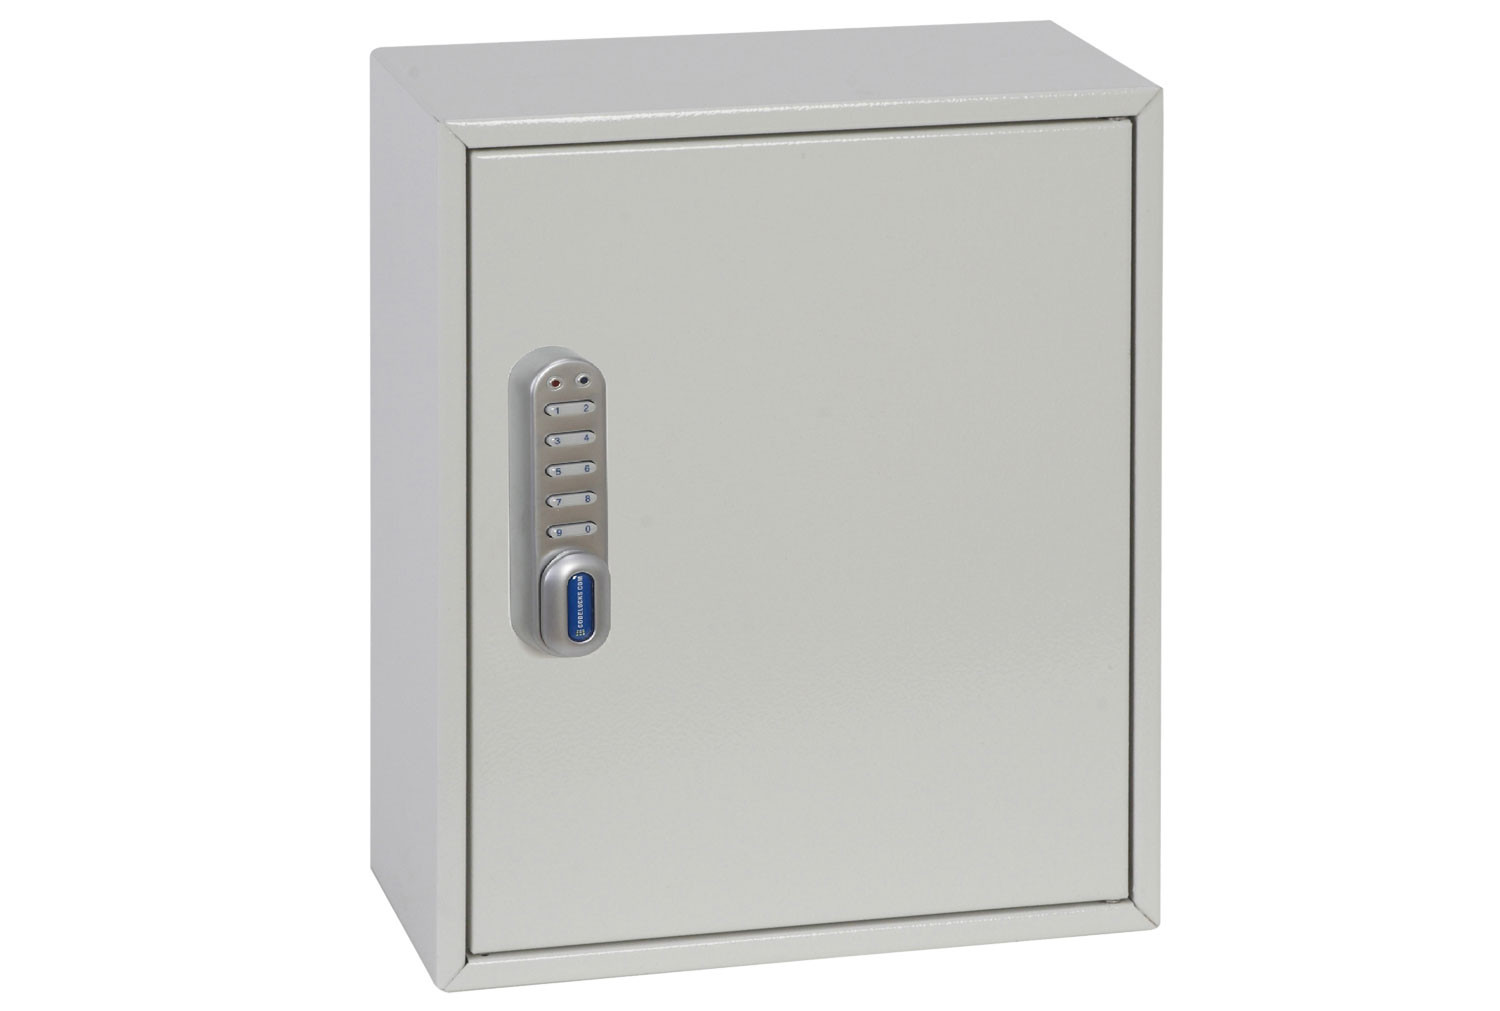 Phoenix KC0501E 24 Hook Deep Plus And Padlock Key Cabinet With Electronic Lock